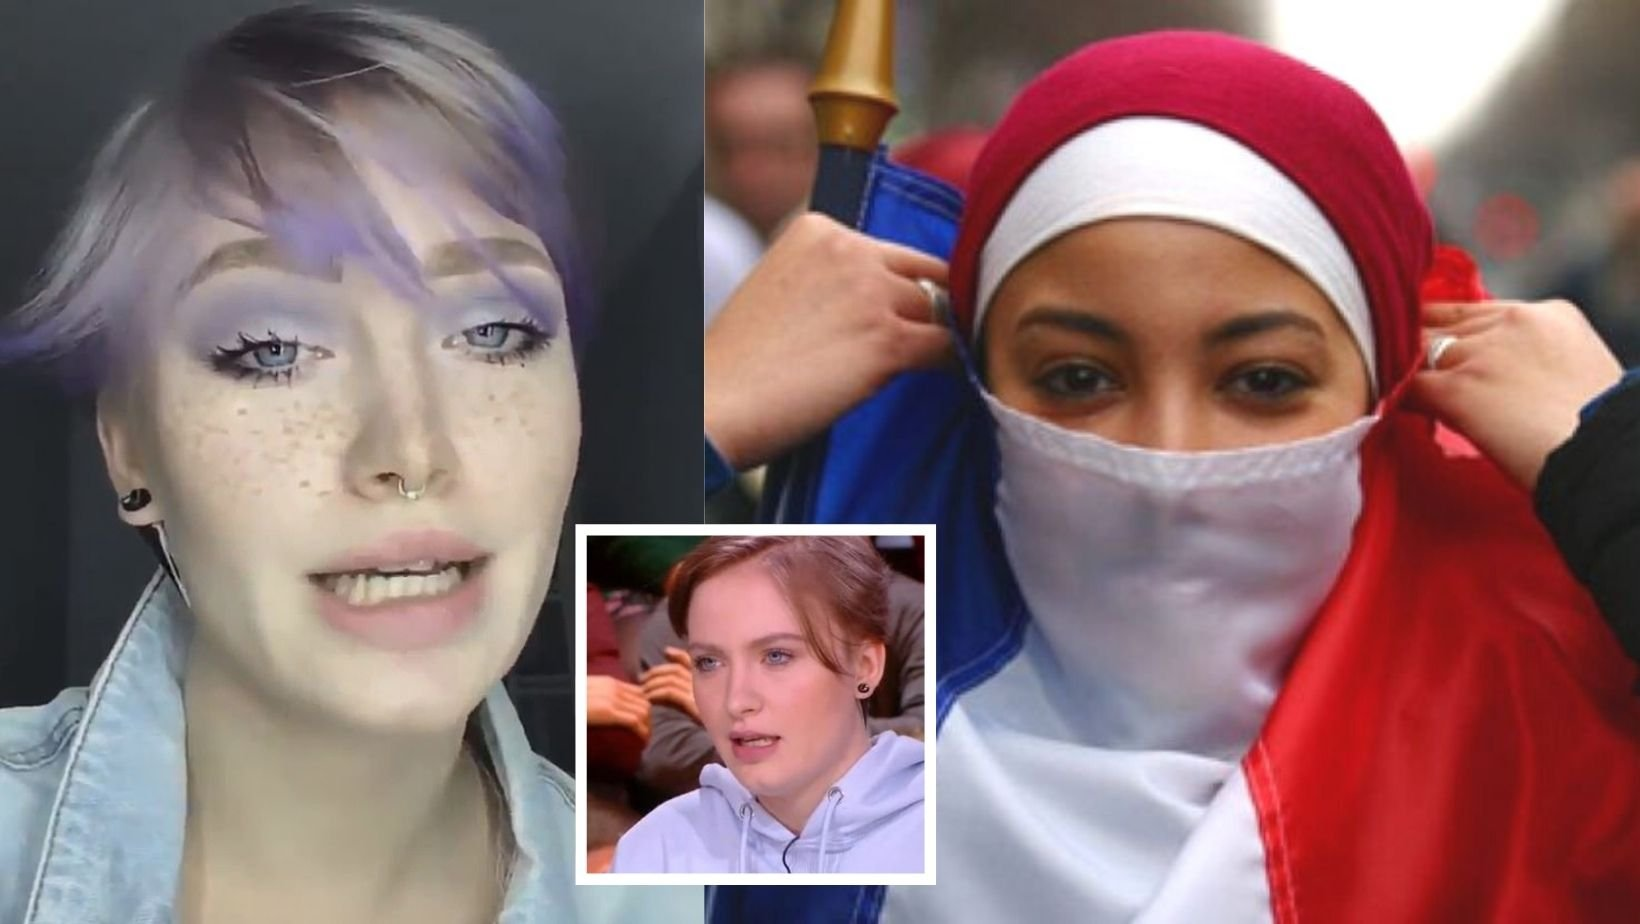 small joys thumbnail 2 7.jpg?resize=1200,630 - Teenager Who Sparked Online Fury After Calling Islam A 'Religion Of Hatred' Releases Book About Freedom Of Speech